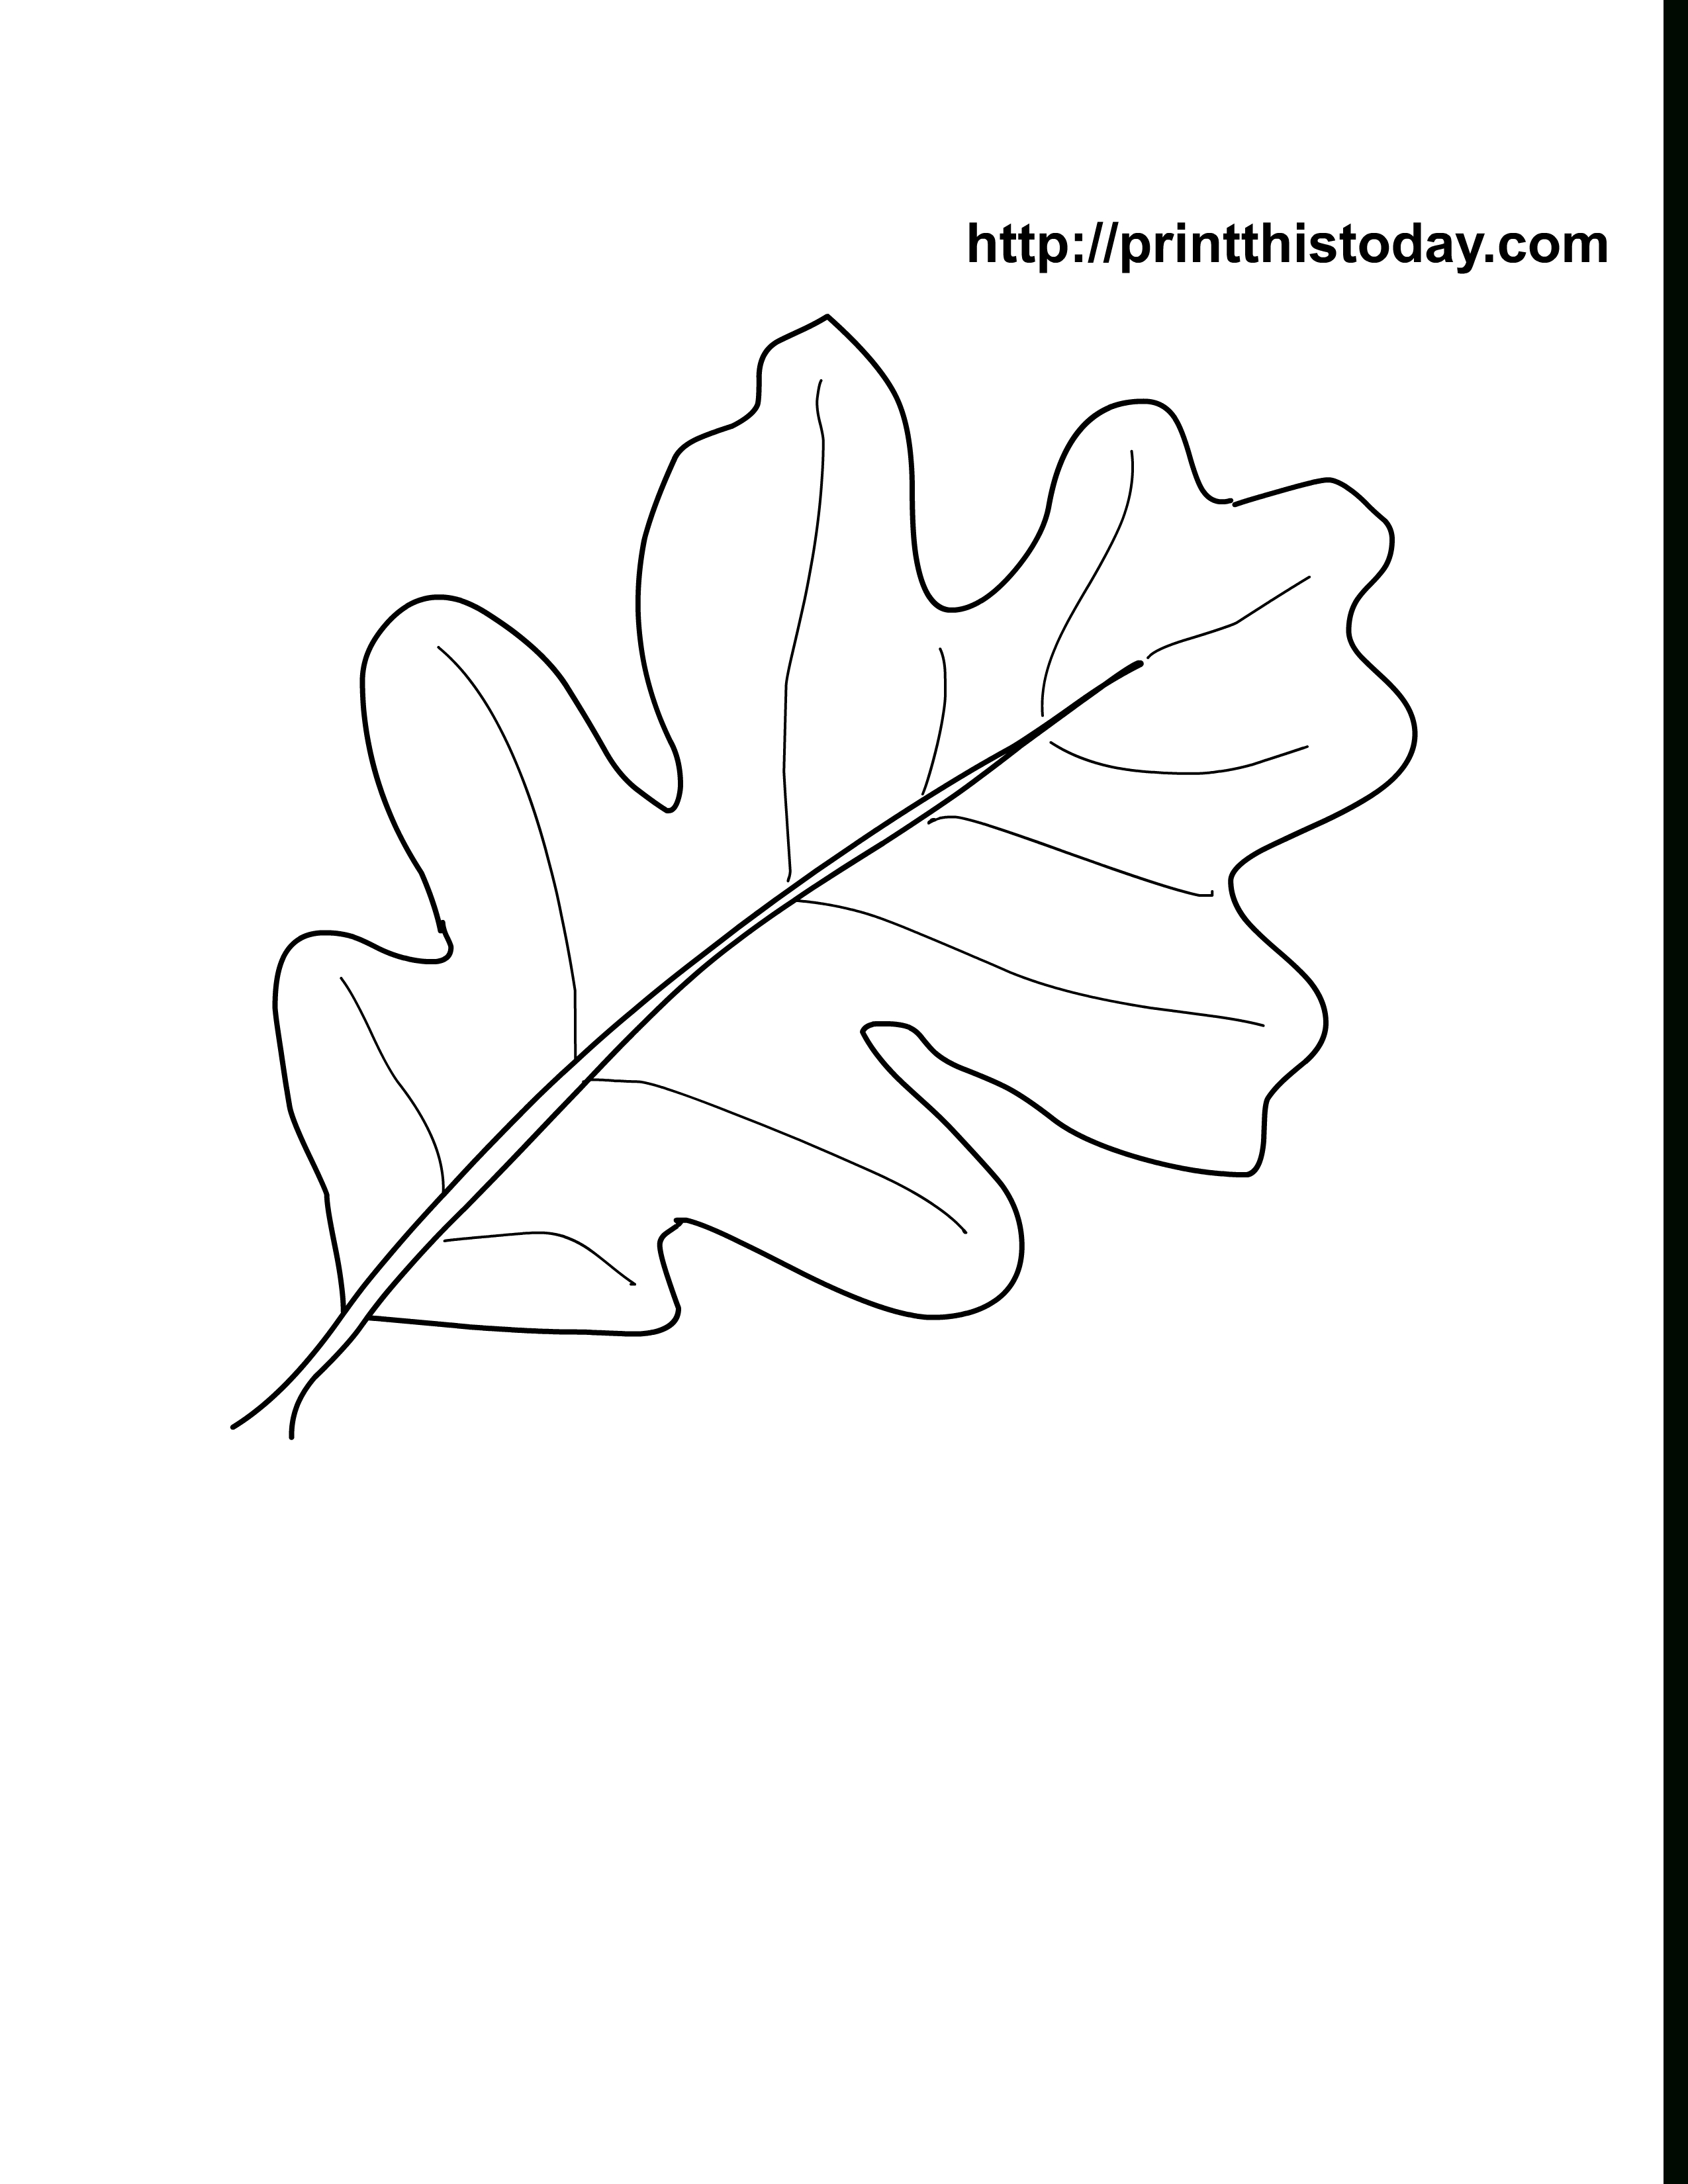 Free Printable Autumn, Fall Coloring Pages - Fall Leaves Pictures Free Printable